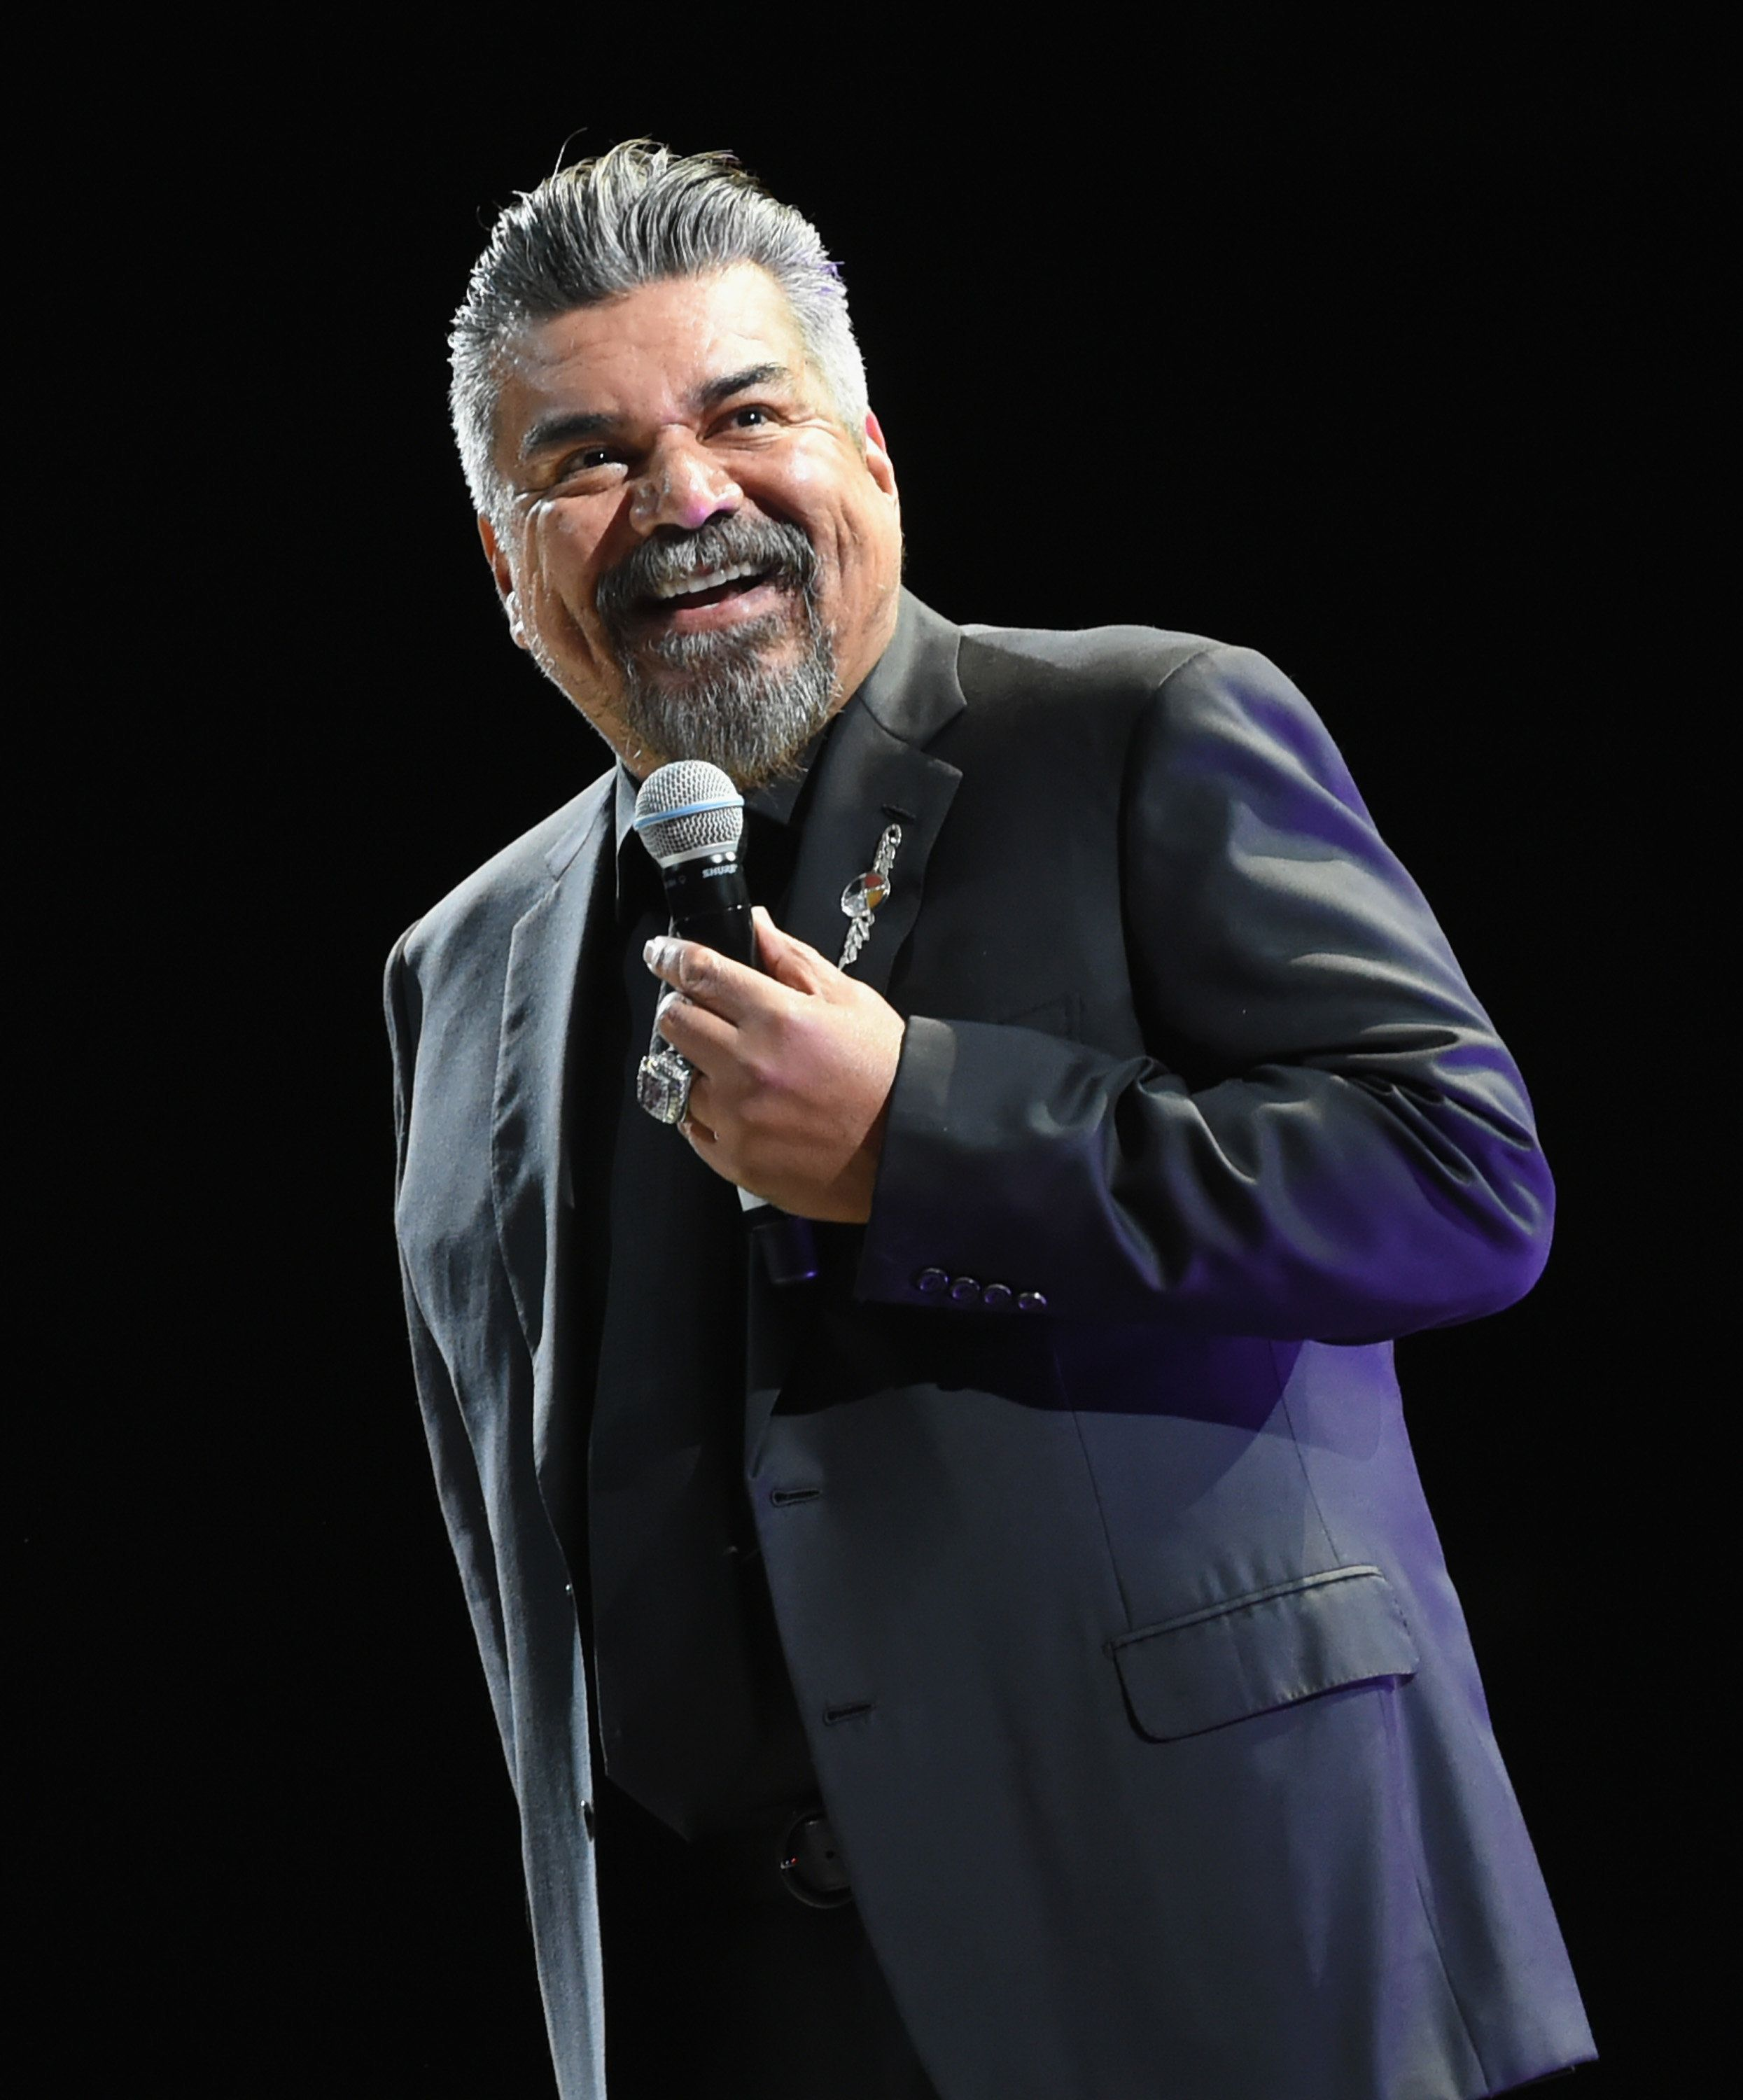 Video Shows George Lopez Fighting Trump Supporter At